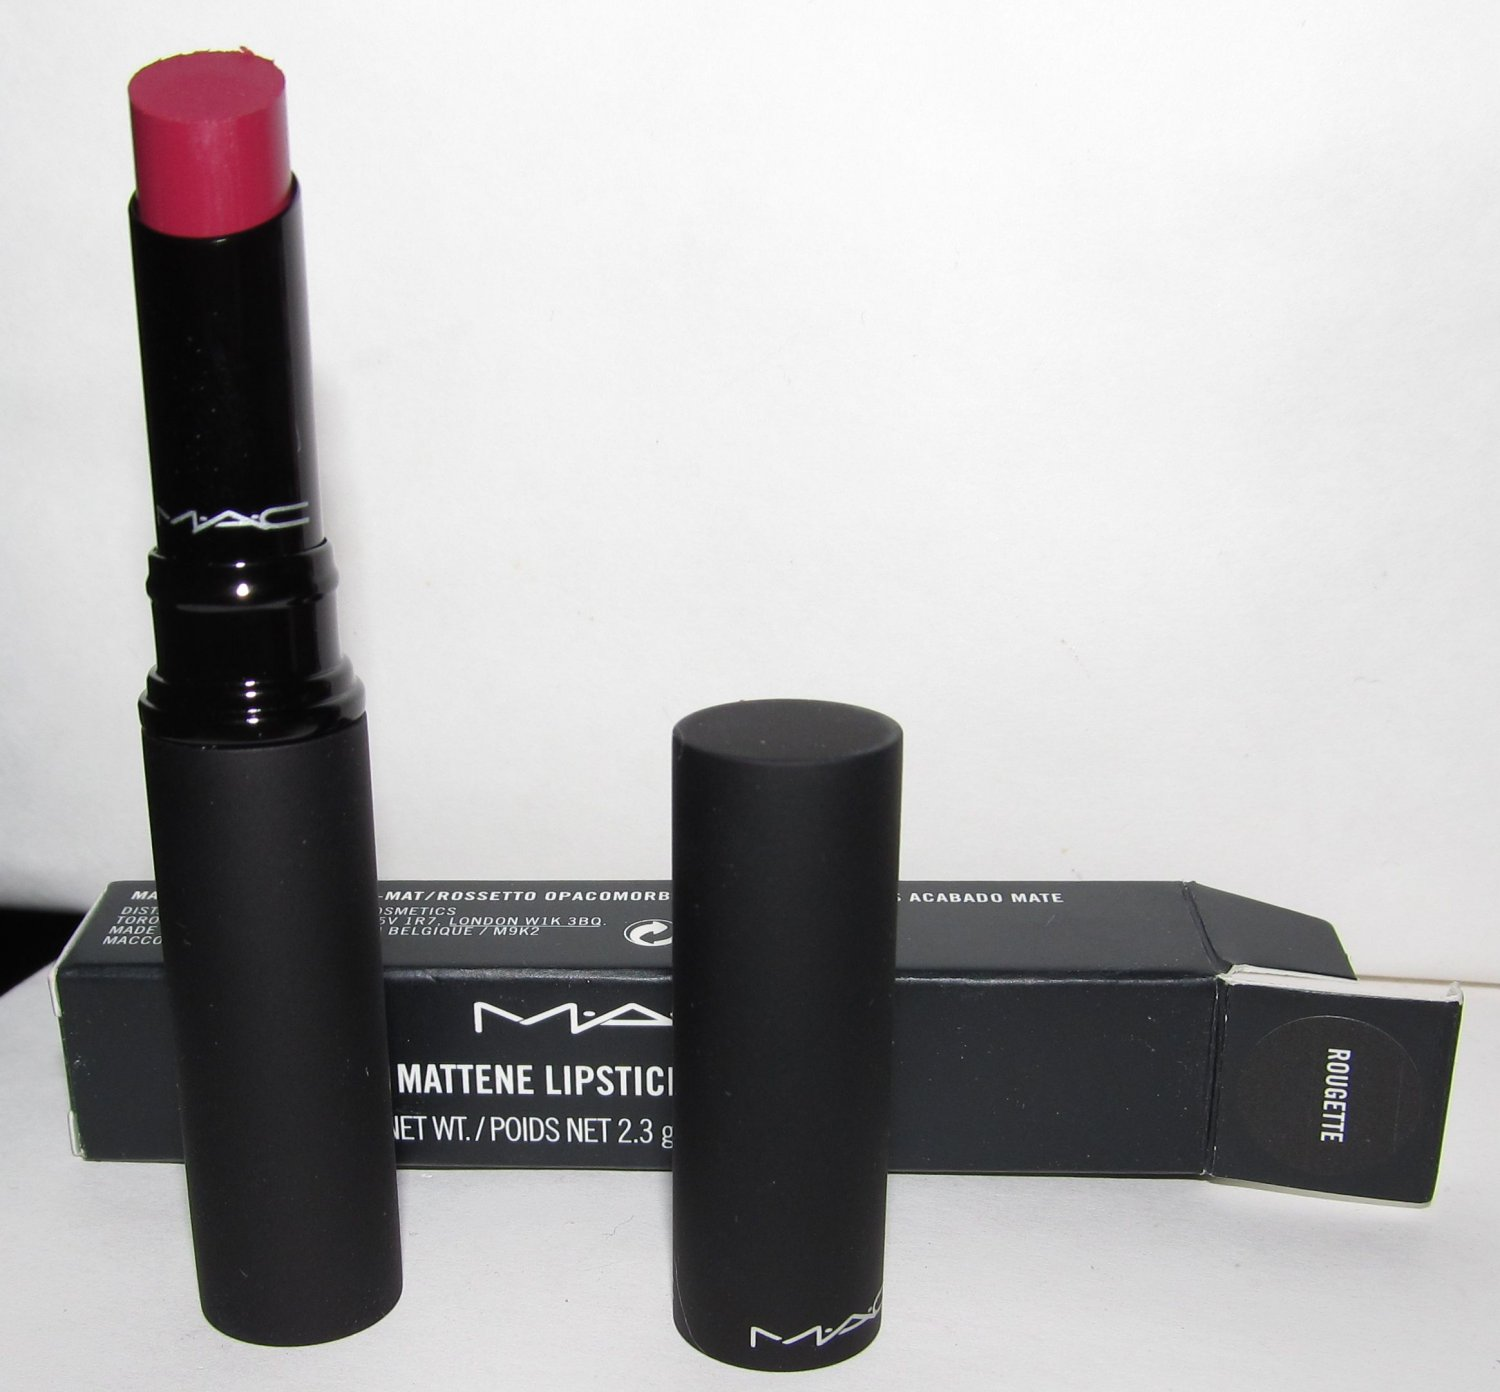 MAC Mattene Lipstick - Rougette - NEW in BOX